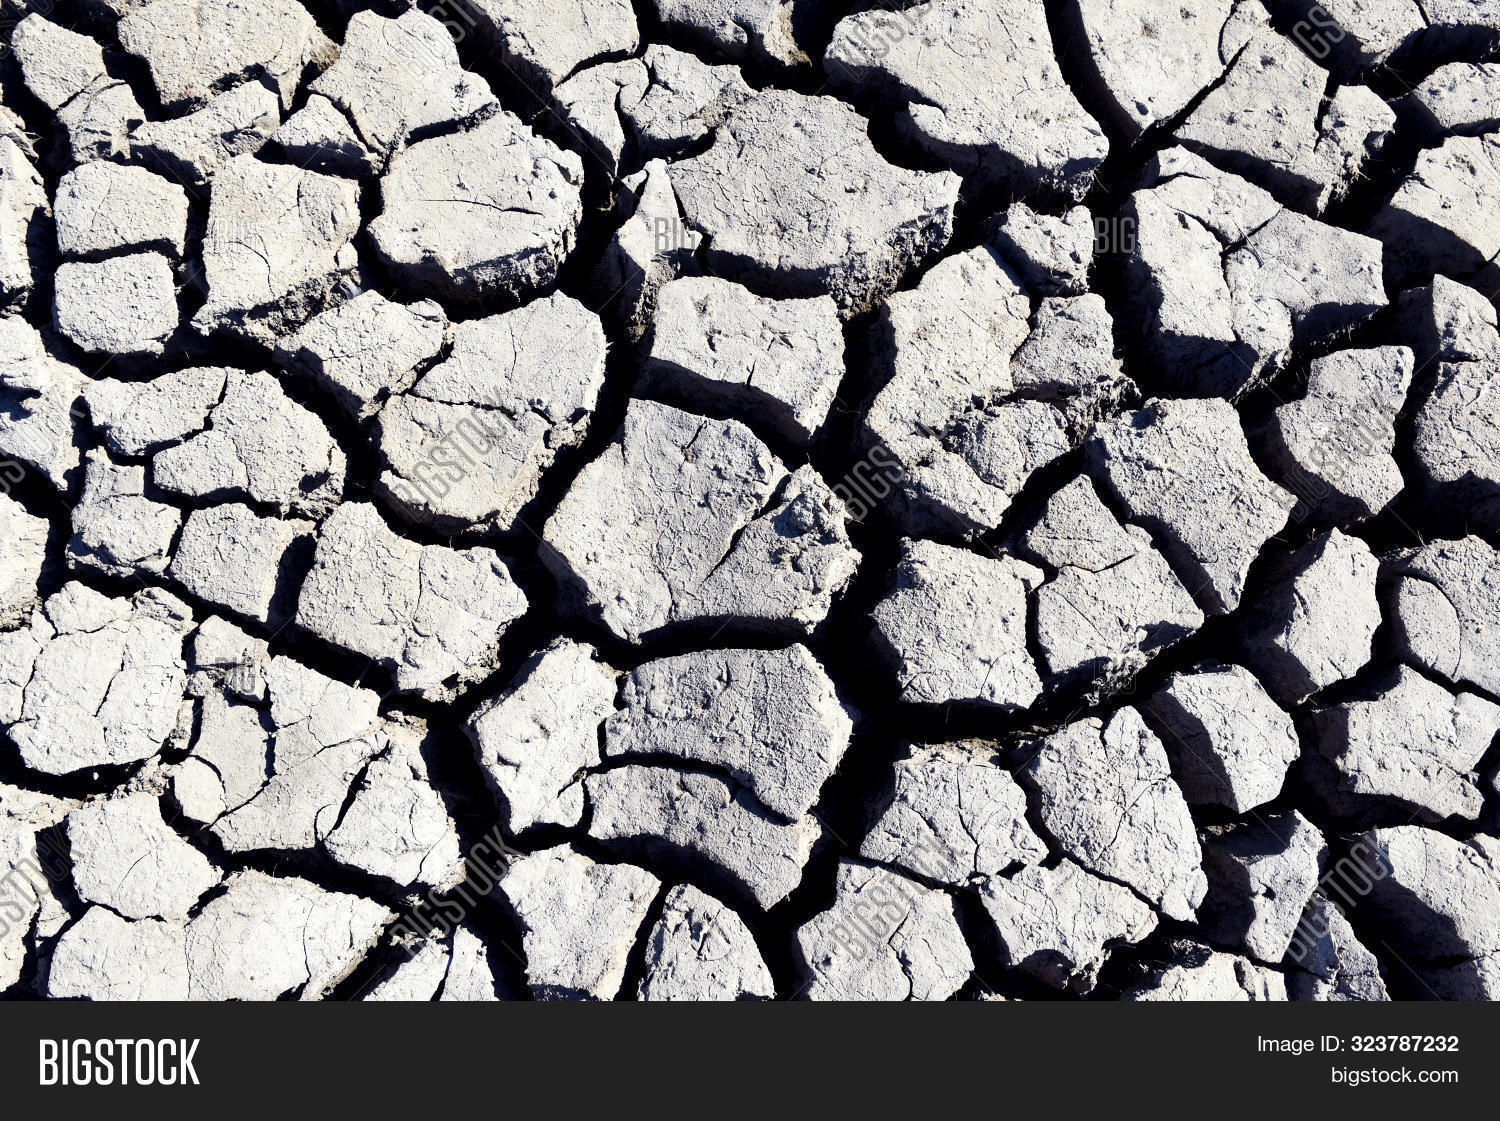 Textured Background Of Dried Earth With Huge Cracks. Land Background.